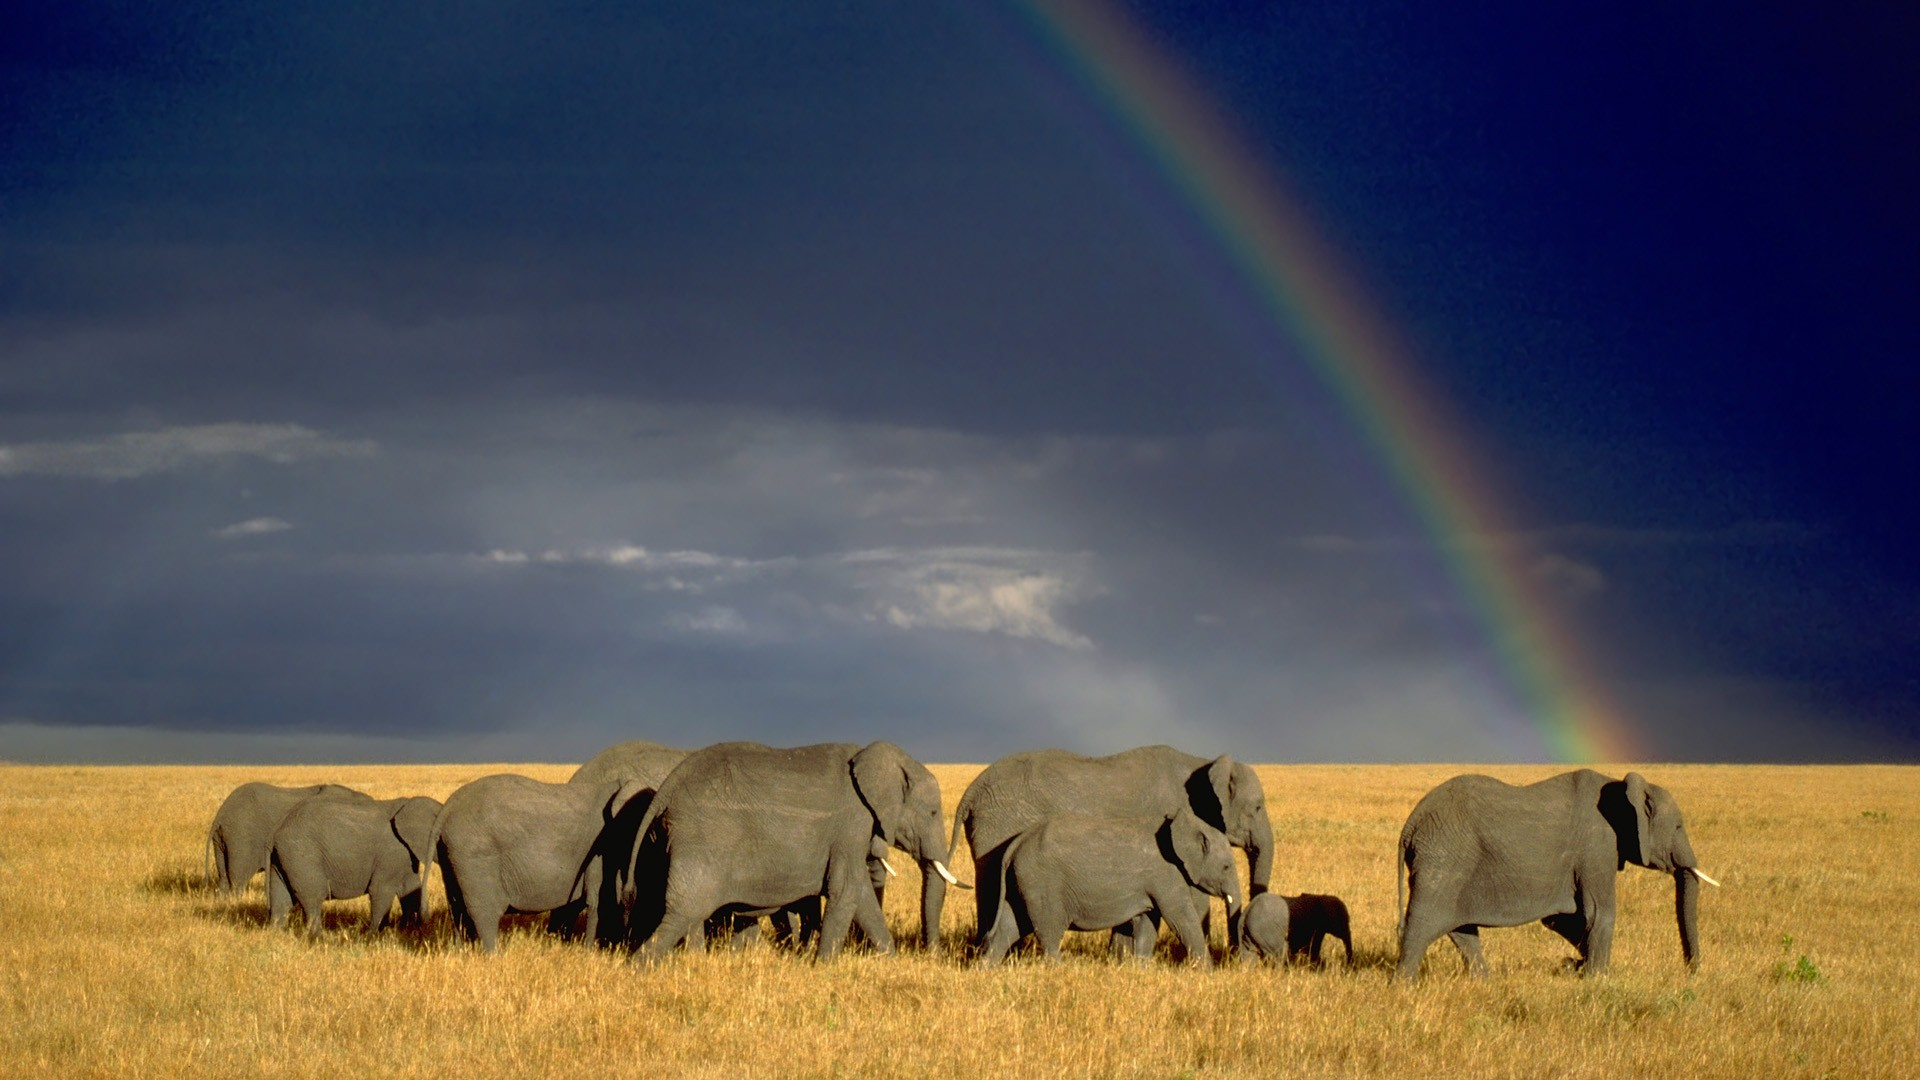 hd elephant pictures